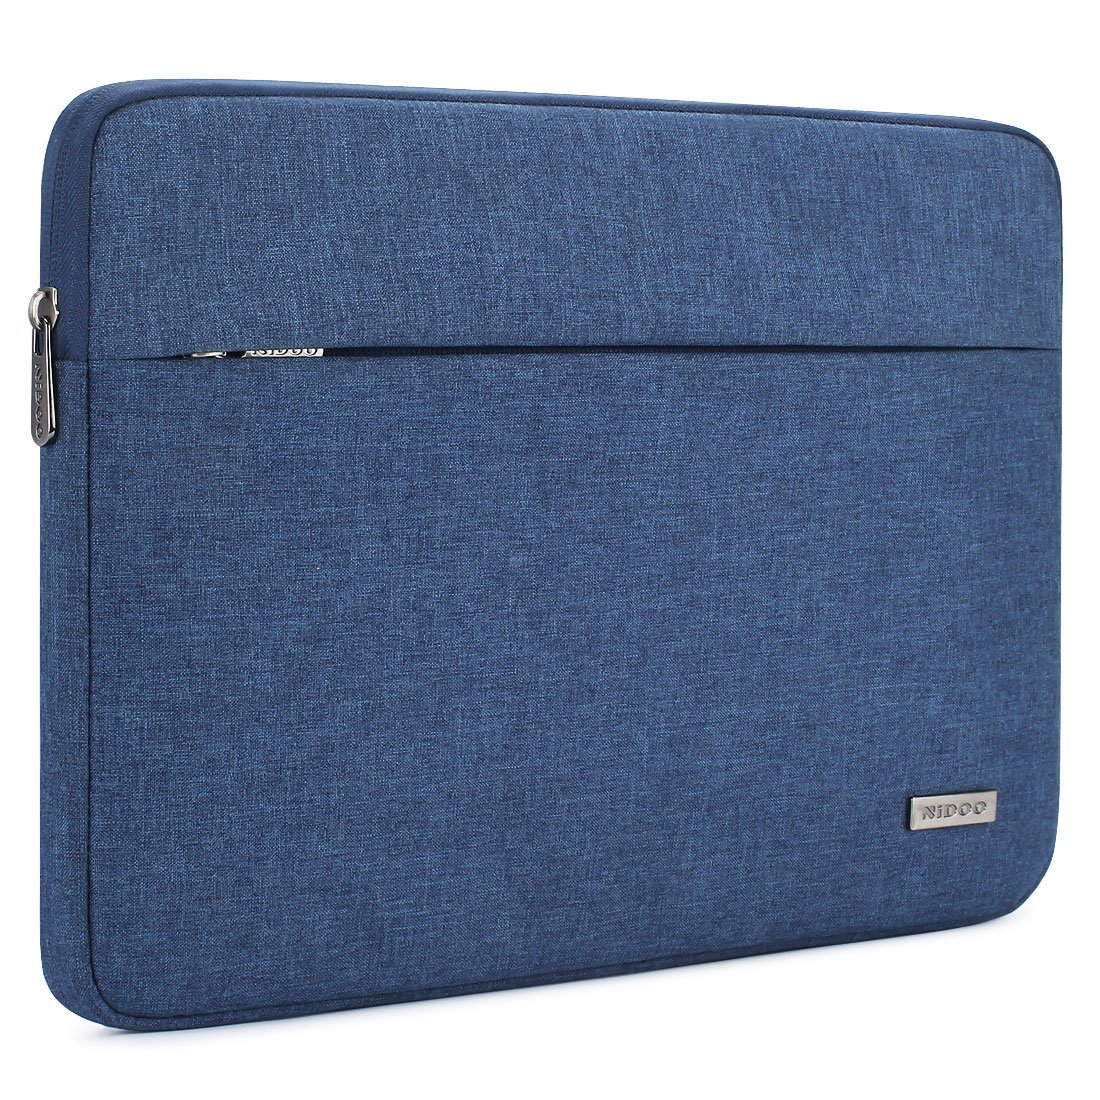 """NIDOO 13.3 Inch Laptop Sleeve Case Water-Resistant Computer Bag Portable Protective for 13"""" MacBook Air 2014-2017/13.5"""" Surface Book / 13.3"""" ThinkPad L380 L390 Yoga / 13.9"""" Lenovo Yoga C930,Blue"""